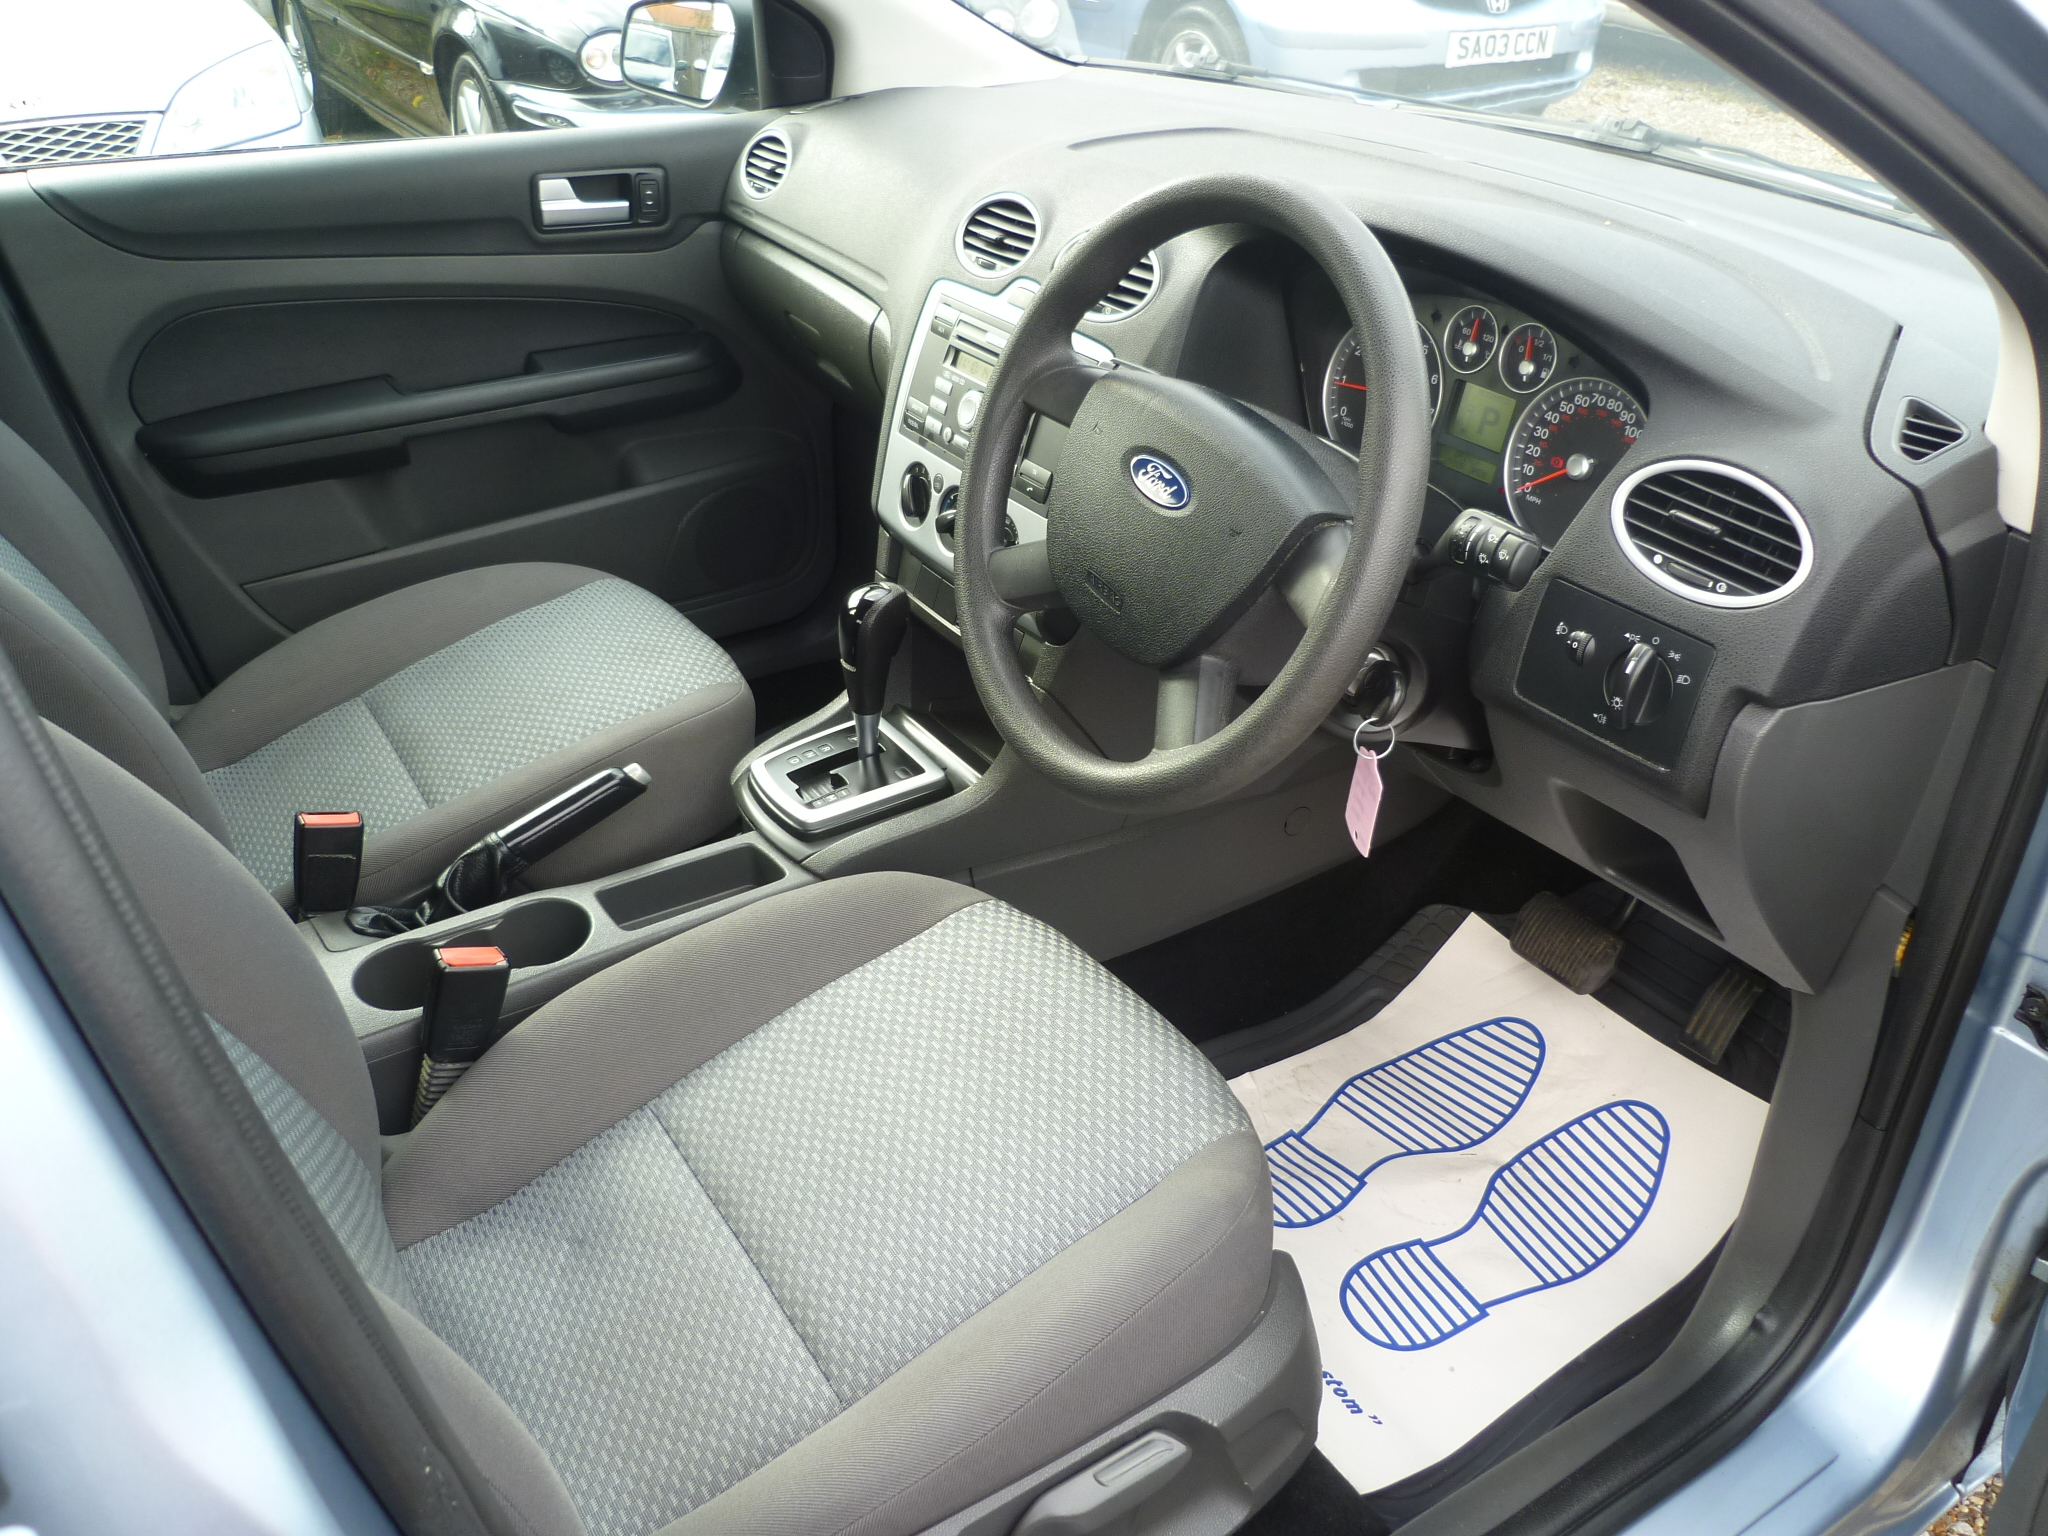 Ford Focus 1.6 LX Automatic 010